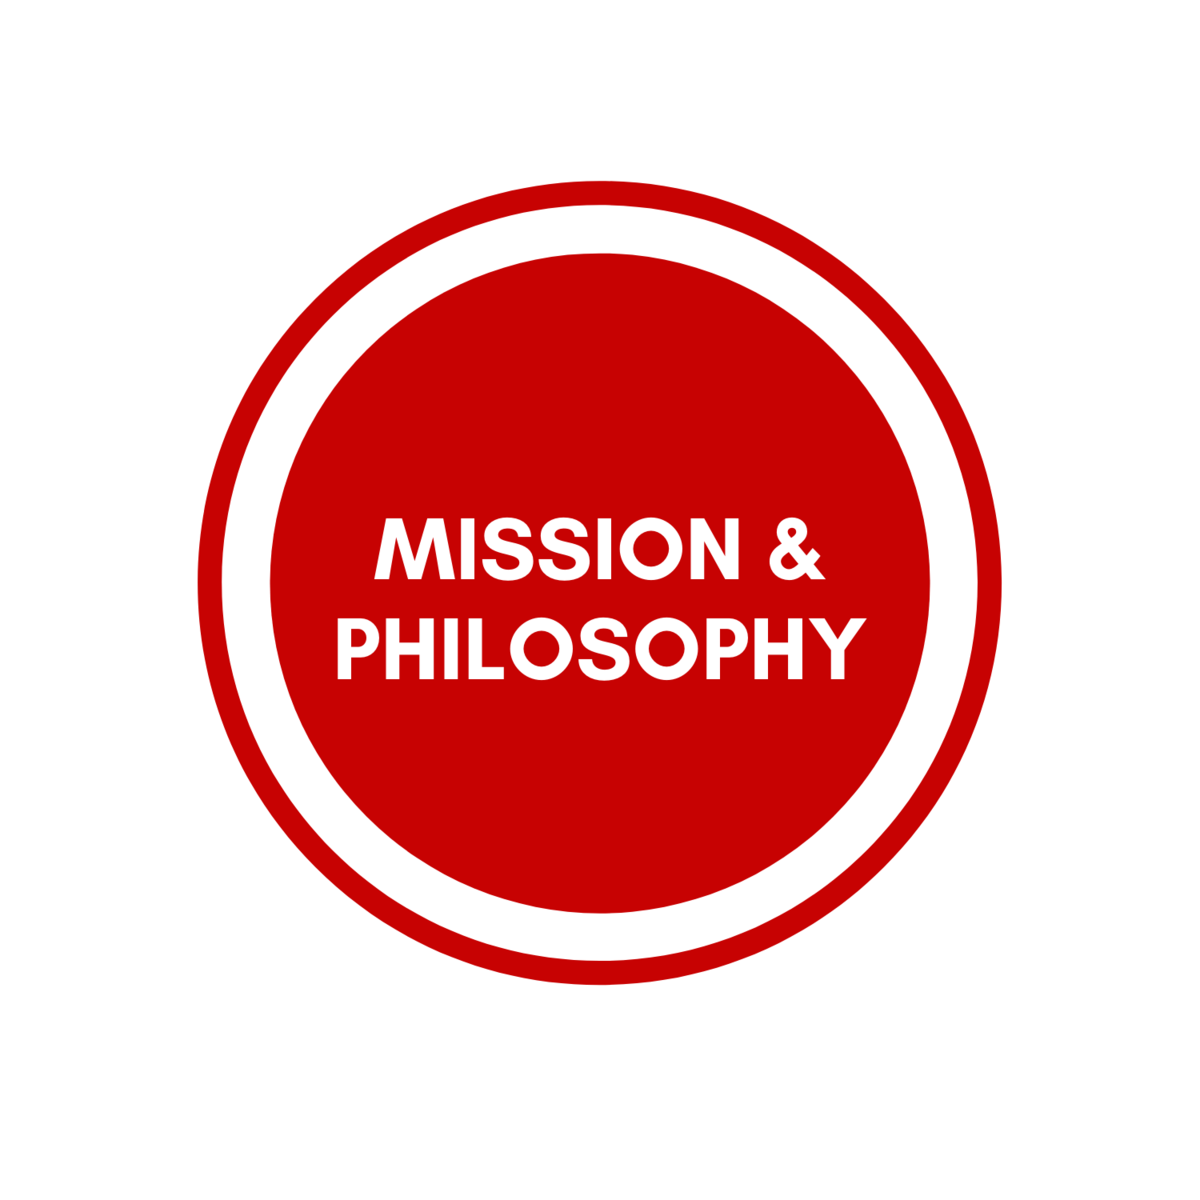 Mission & Philosophy